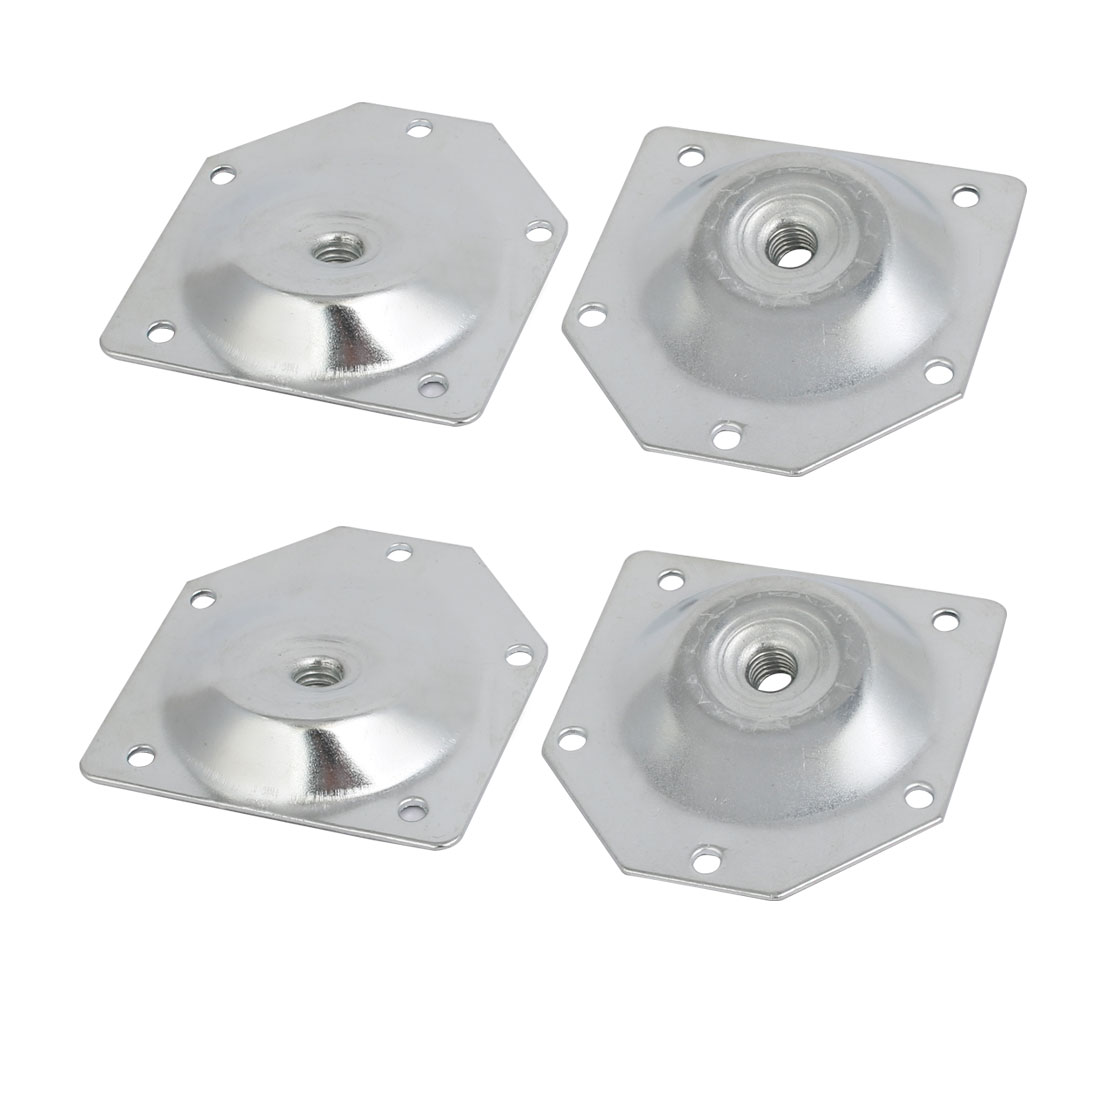 70mmx67mmx1.2mm Zinc Plated Table Leg Mounting Plates Set 4pcs